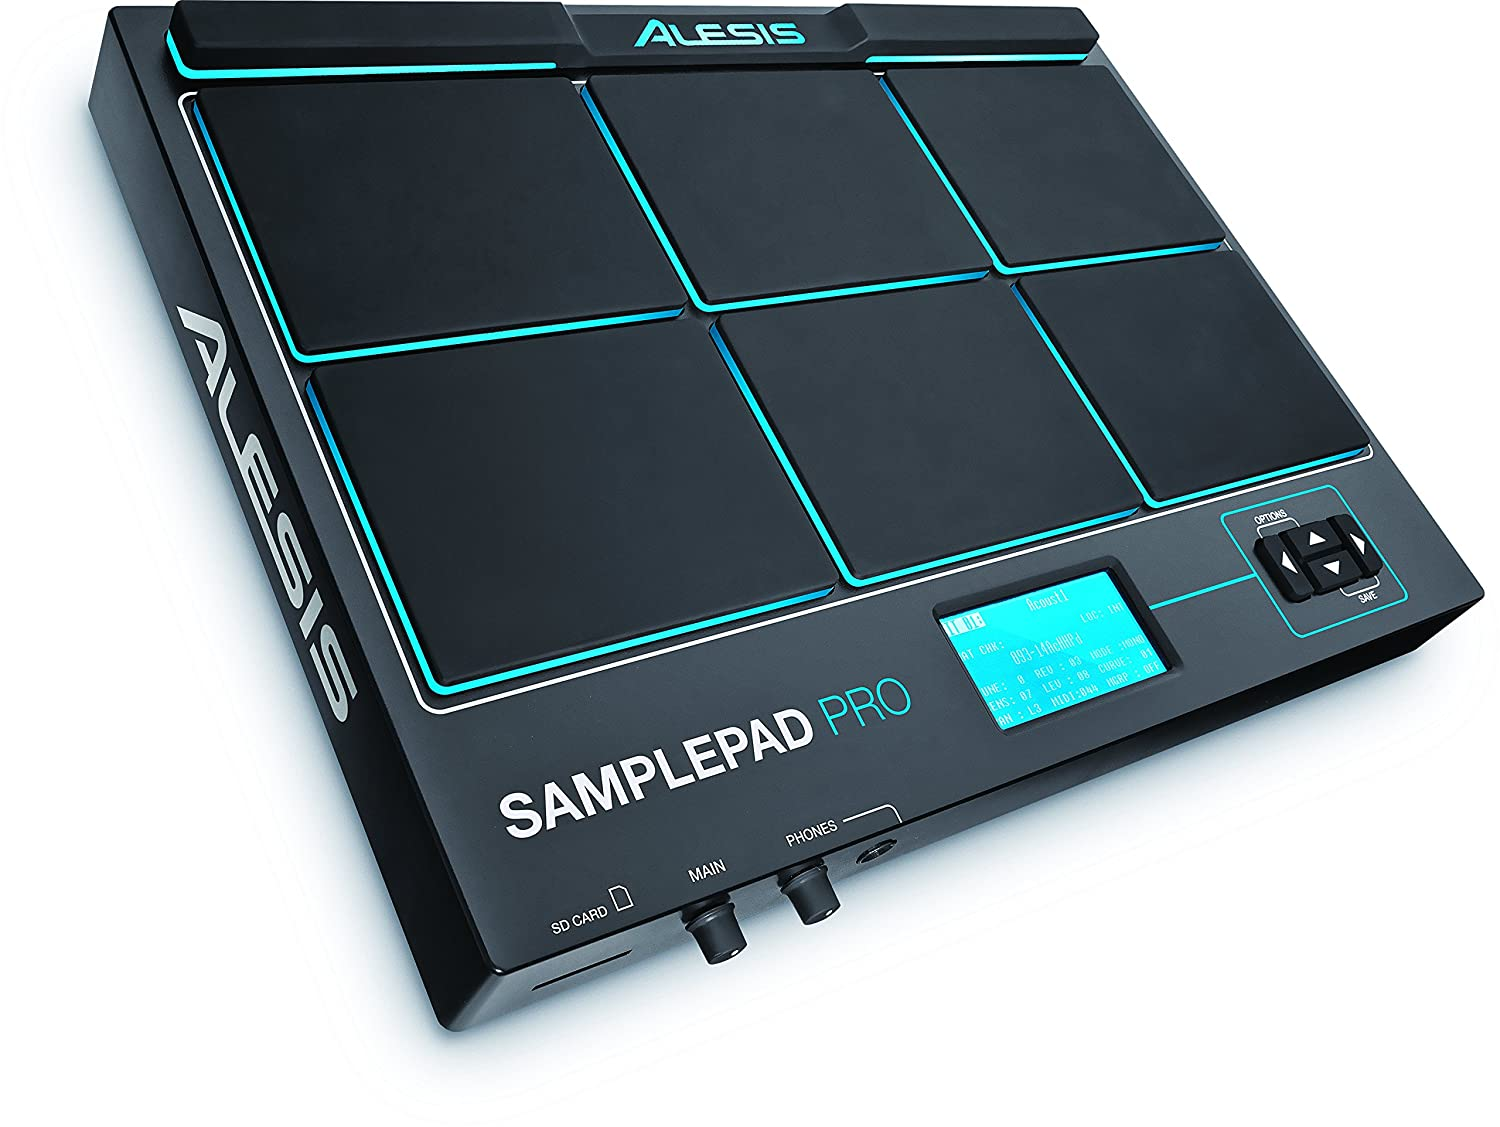 Alesis SamplePad 4 | Compact 4-Pad Percussion and Sample-Triggering Instrument with SD Card Slot inMusic Brands Inc. Sample Pad 4